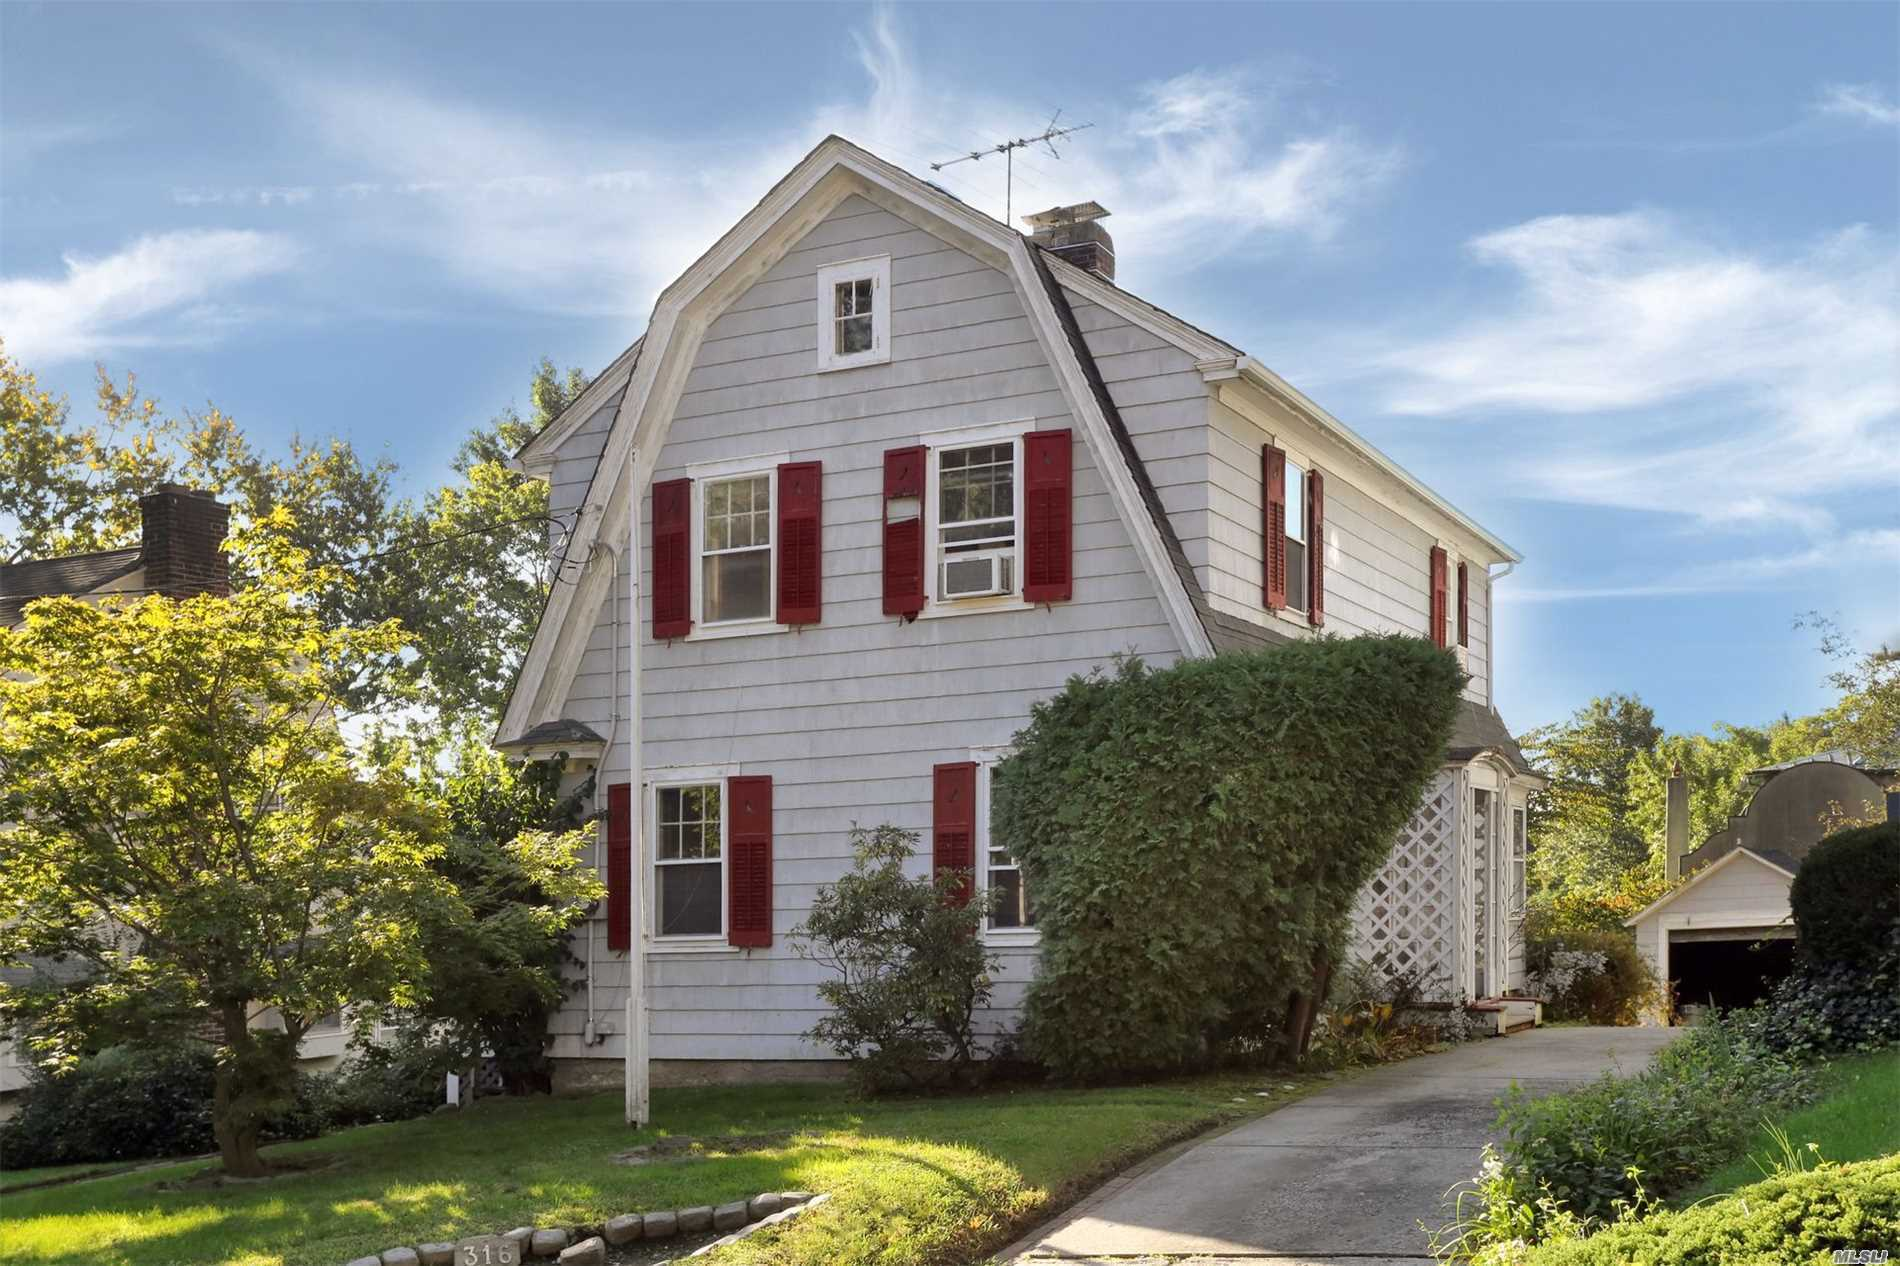 This Charming Douglas Manor 3 Bedroom 1920'S Dutch Colonial With Old World Style Is Ready For A Facelift. In The Center Of A Picturesque Waterfront Community, It Is Close To Highways And All Major Transportation Just 28 Min To Nyc. Make This House Your Home Just In Time For The Holidays. Douglaston Manor Association Fees Aprox $650 Per Year